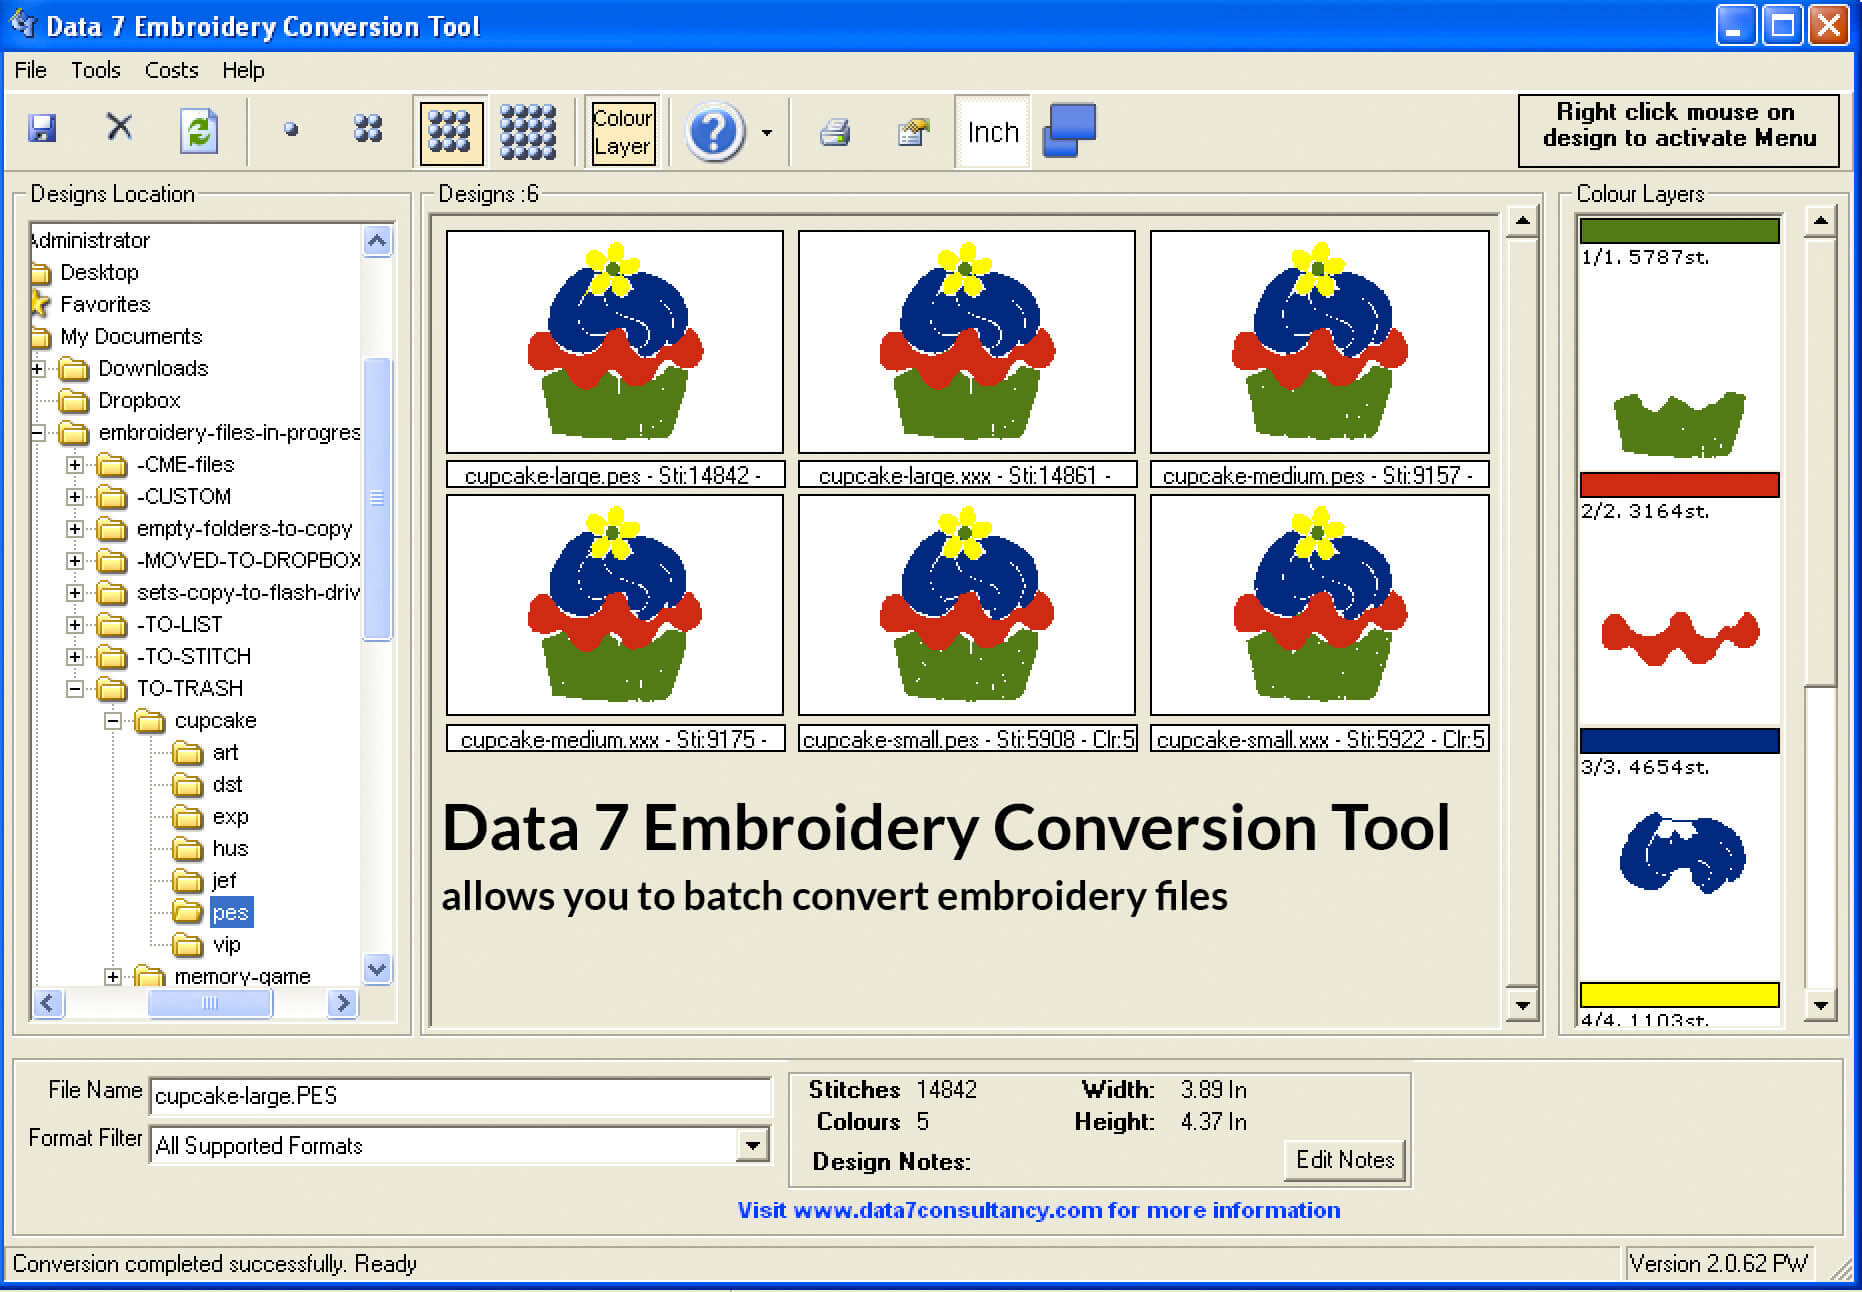 Data 7 Conversion Software allows you to convert embroidery files